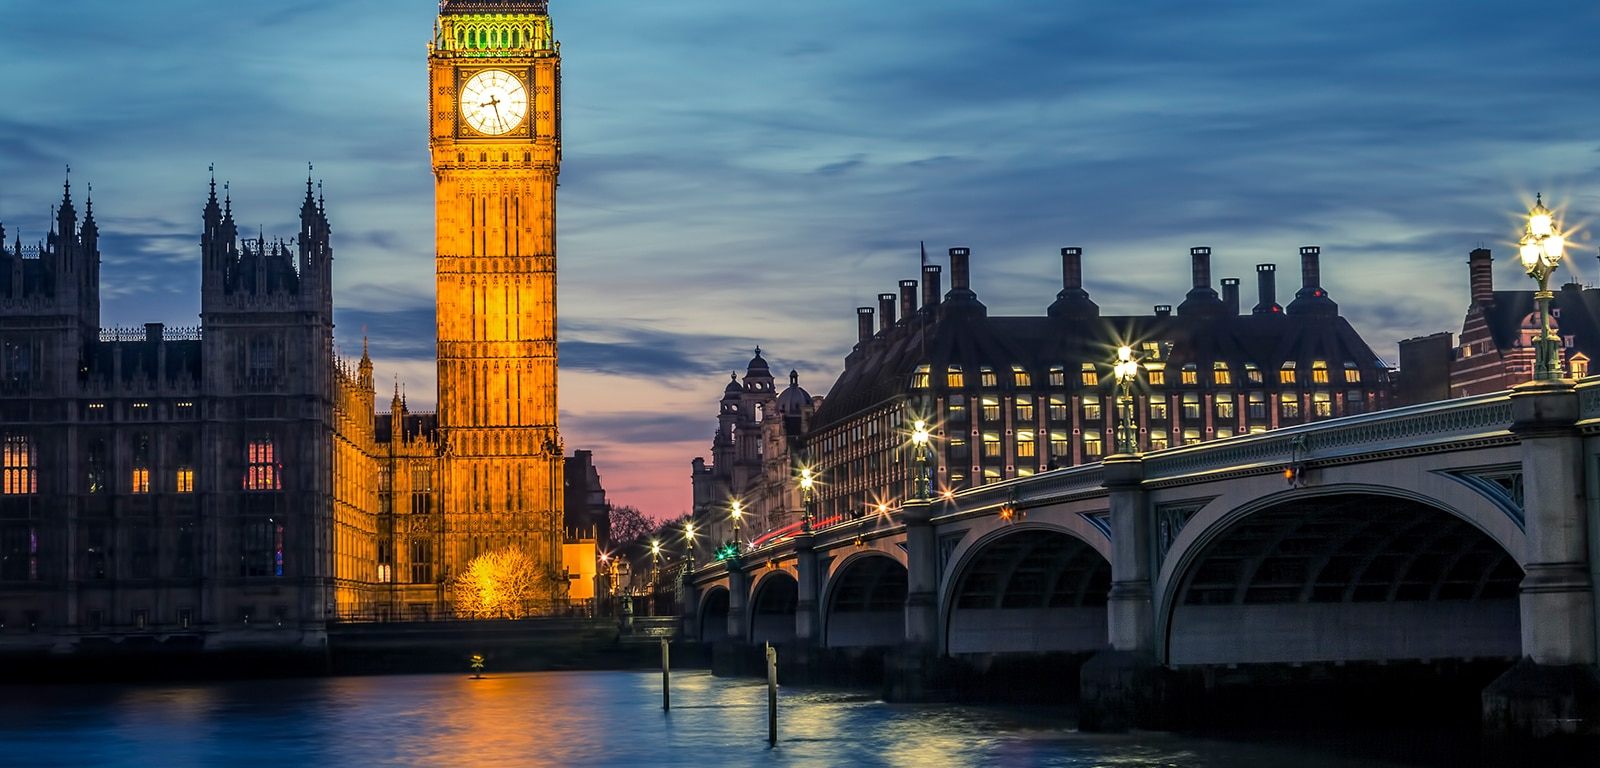 Expat returning to the UK? – Here's what to consider